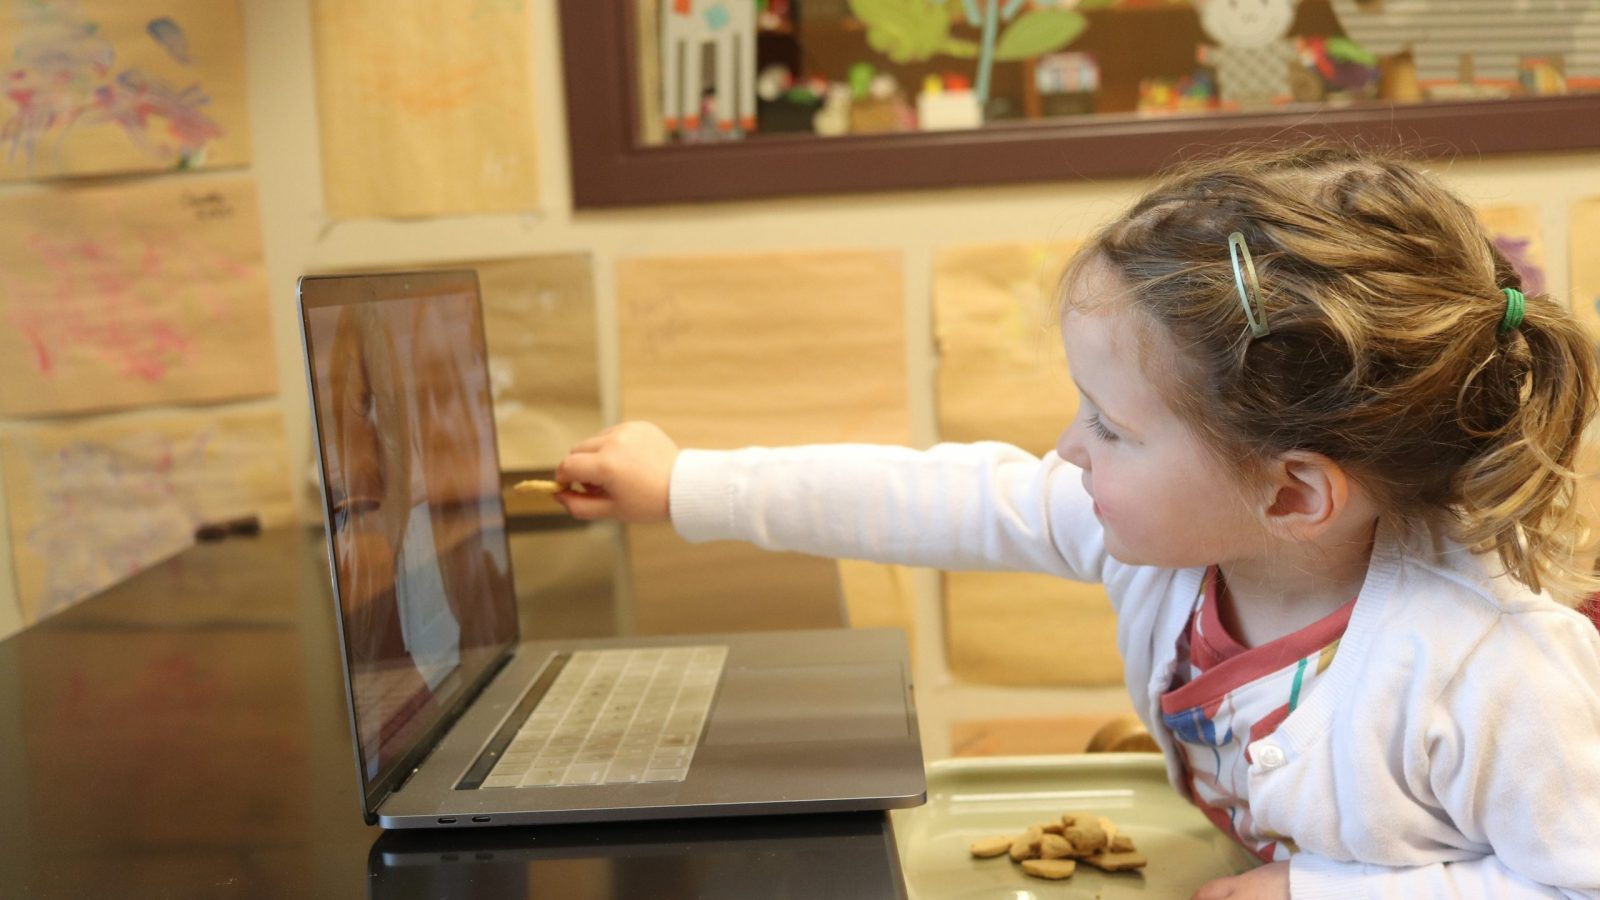 Blonde little girl reaches out to laptop screen